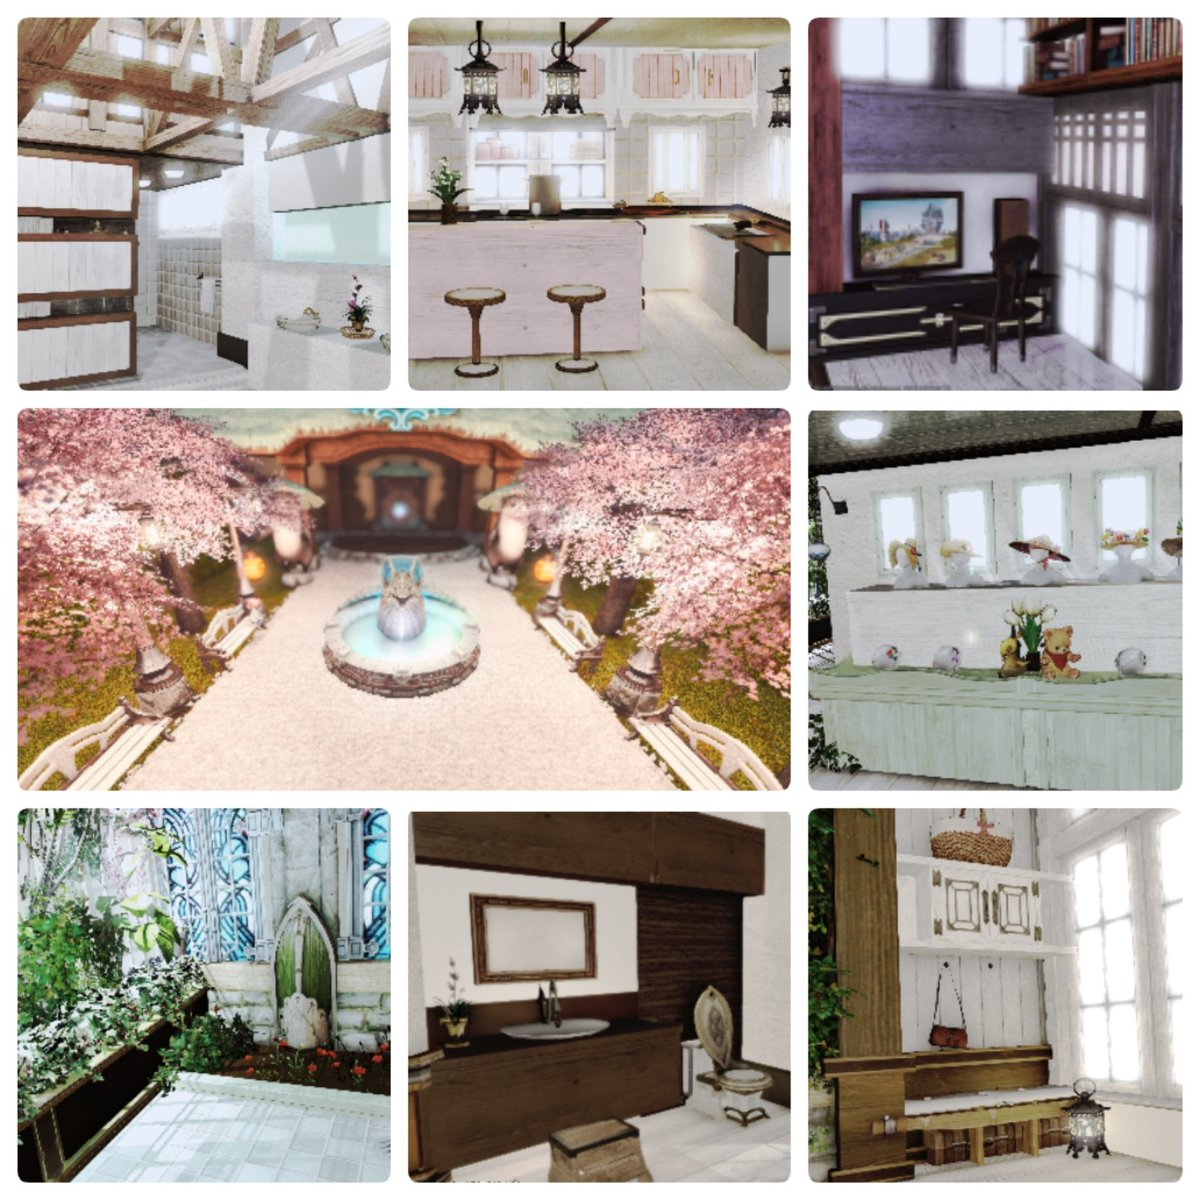 Rhapsody On Twitter I Never Would Ve Thought I D Find A New Creative Hobby In An Mmo But Ffxiv Housing Has Provided An Outlet For Defining And Refining My Interior Design Style I Ve